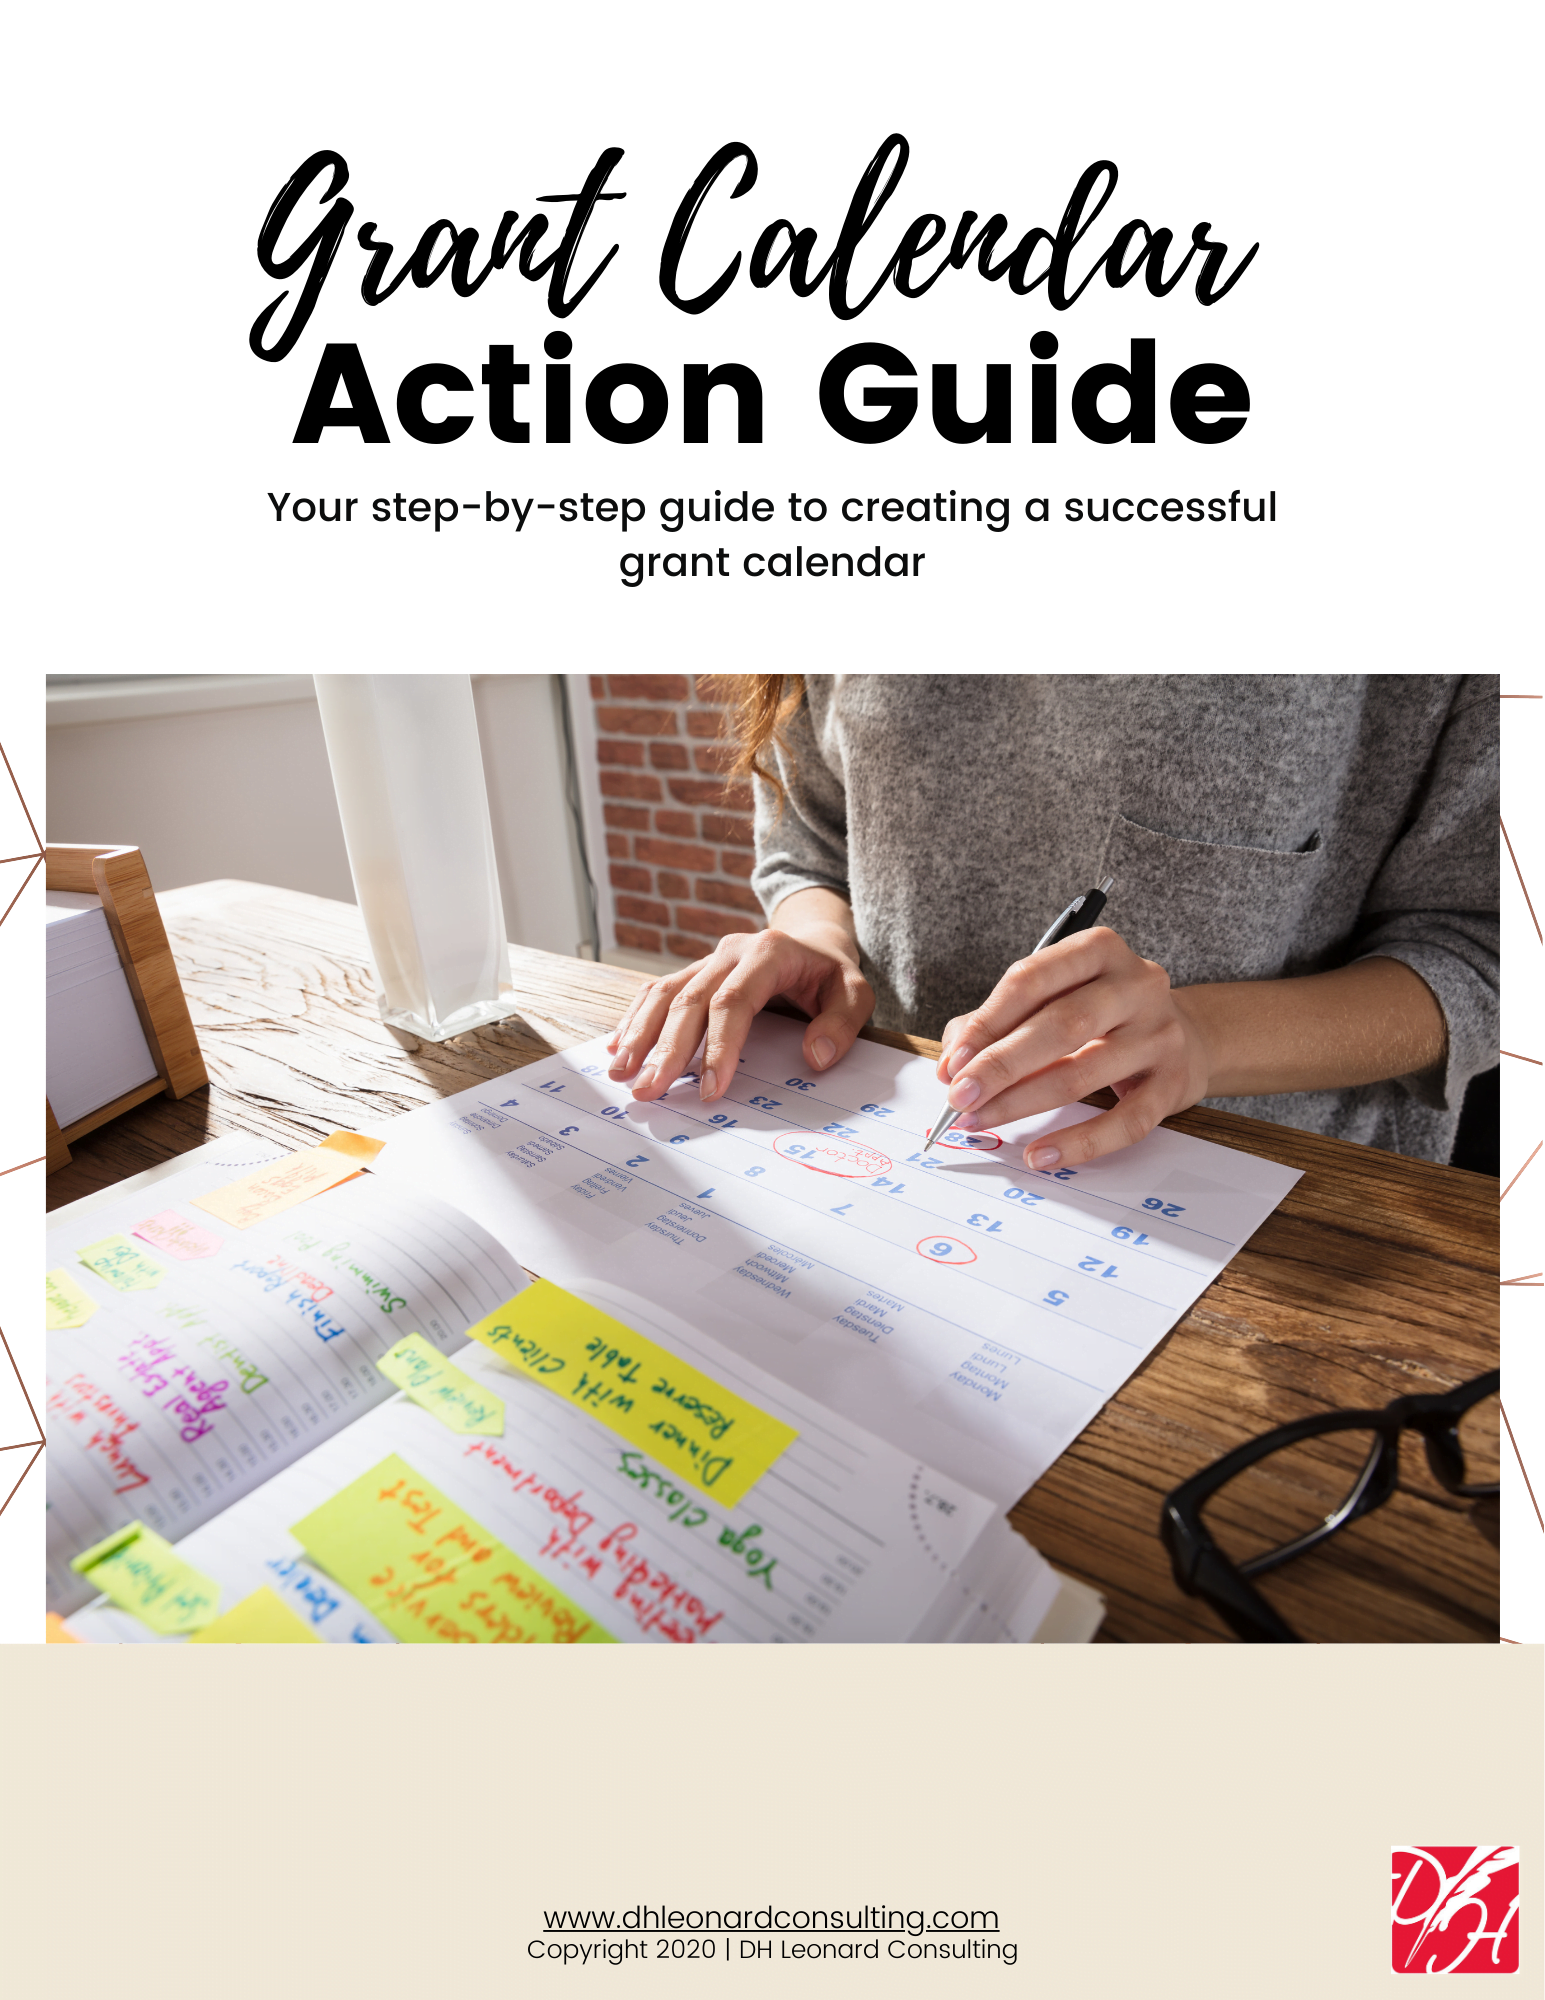 Grant Calendar Action Guide Cover